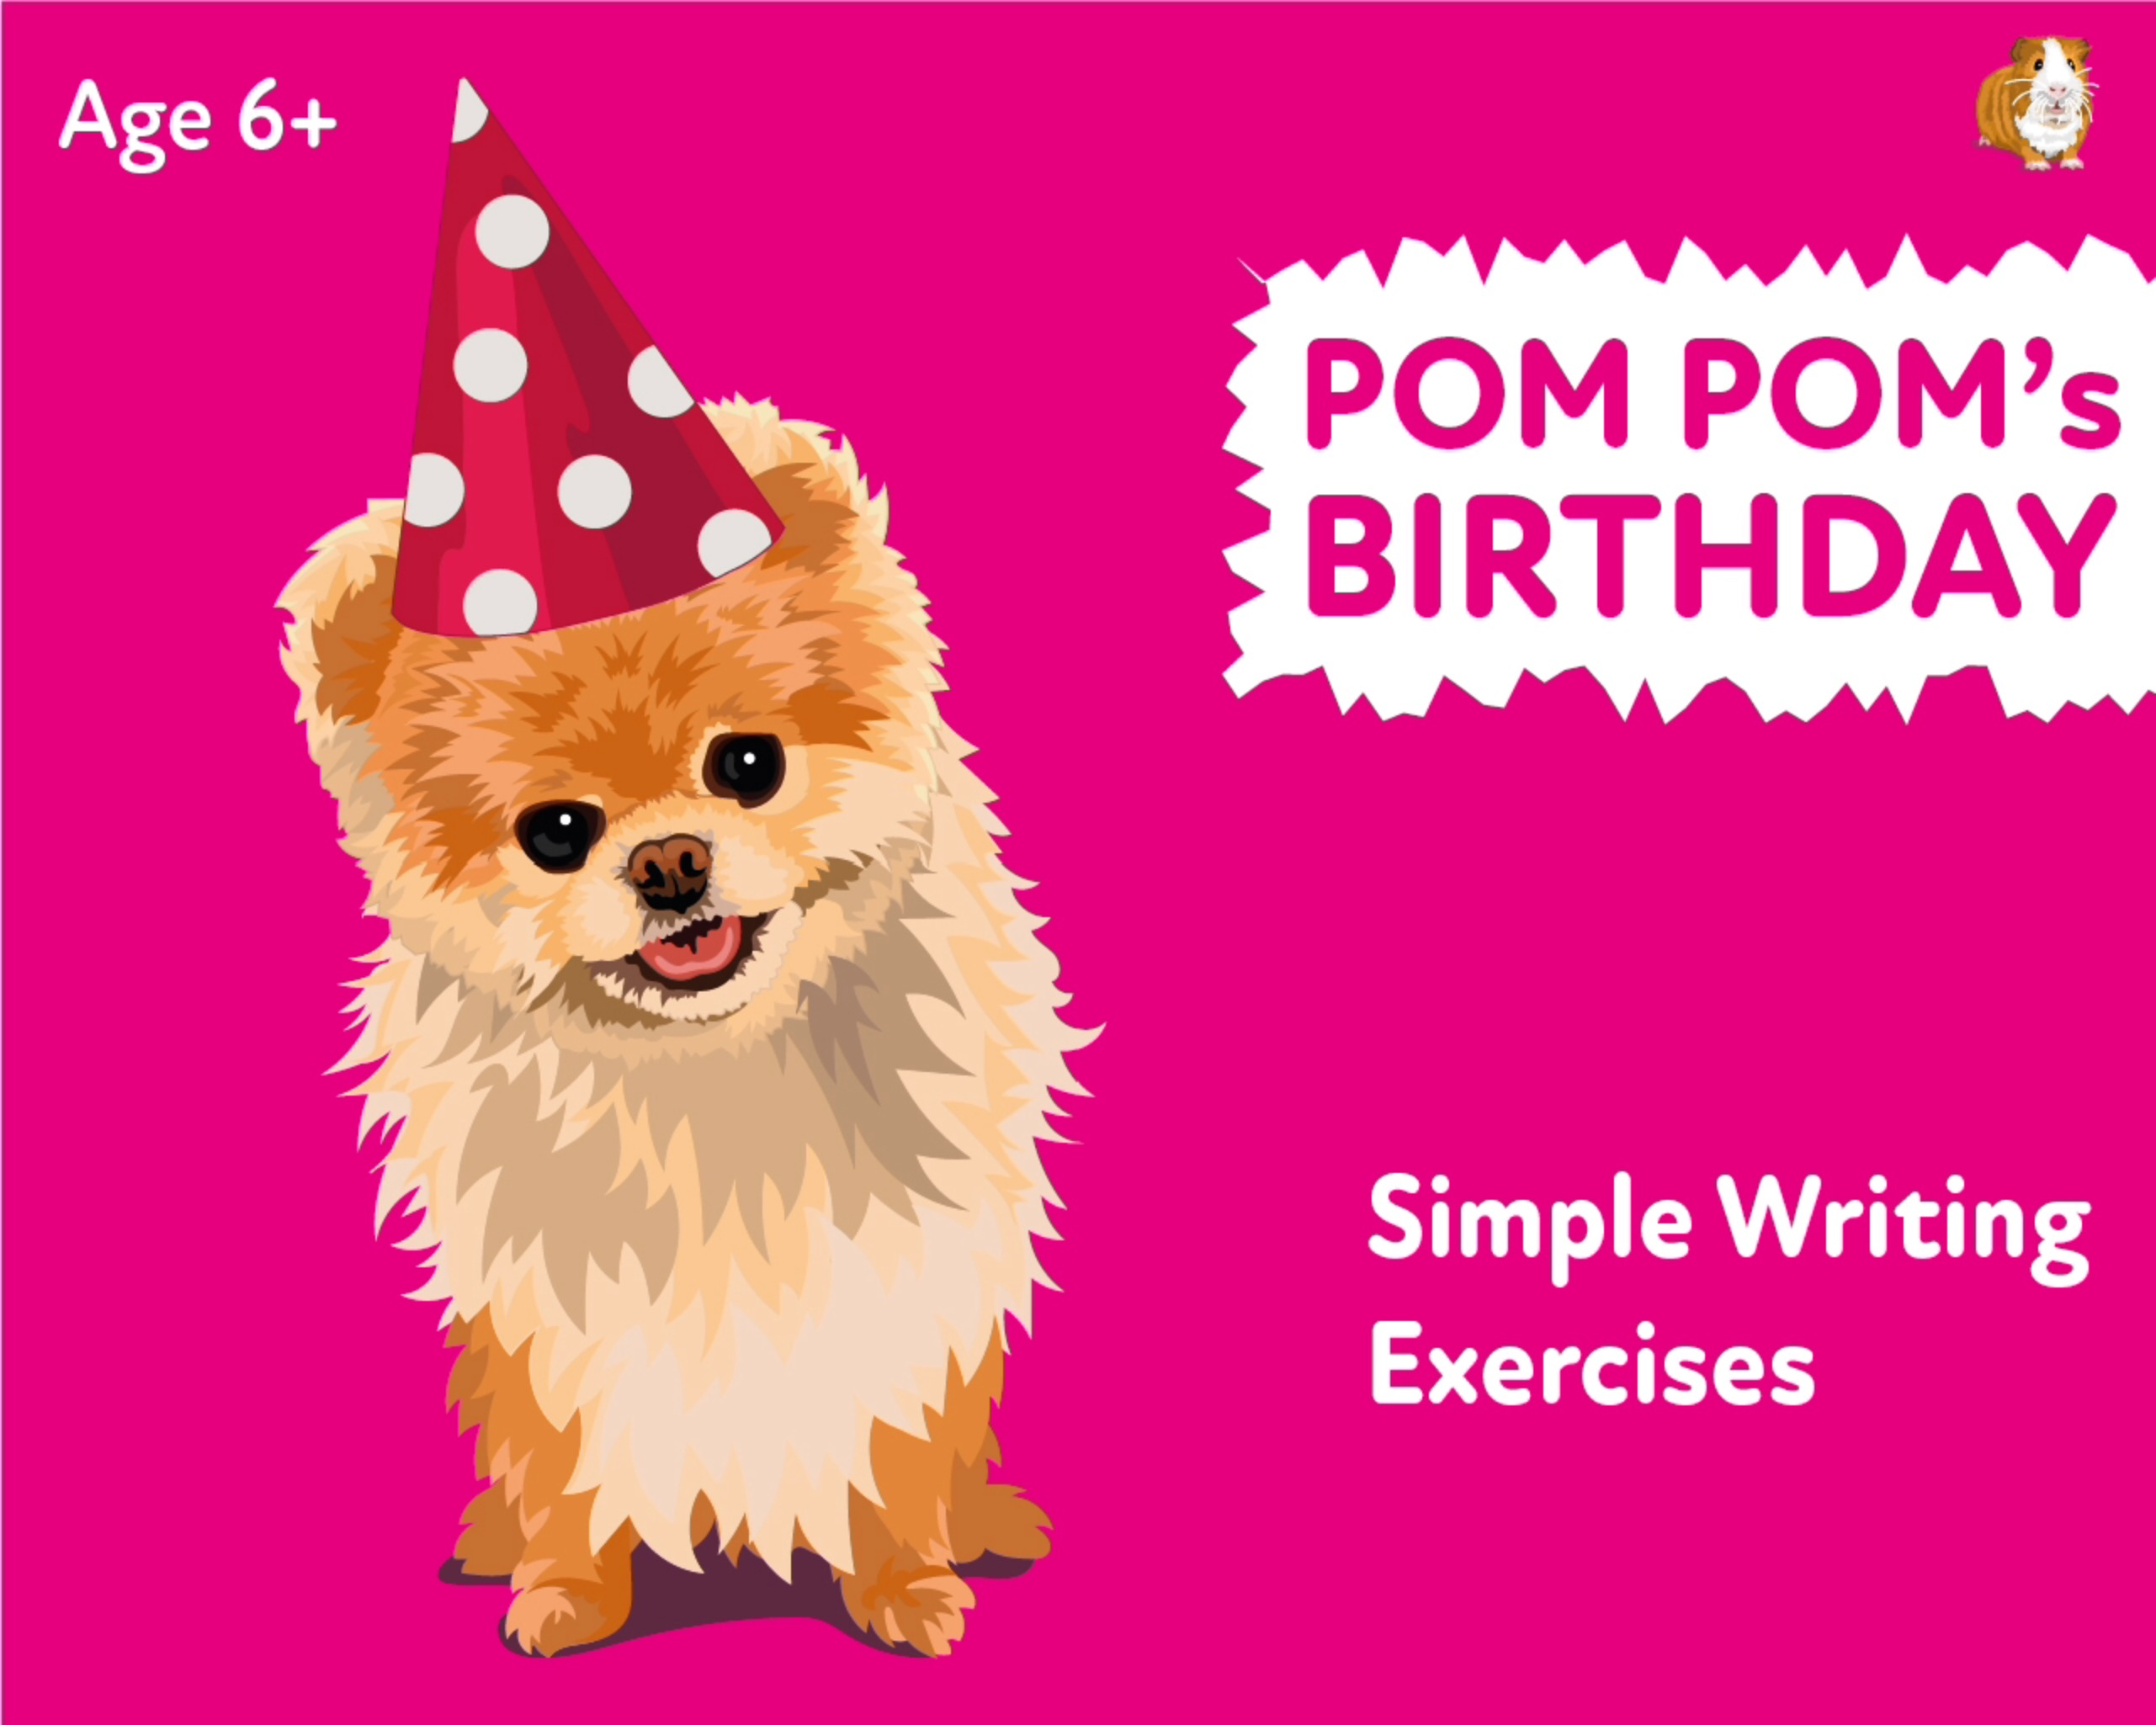 'Pom Pom's Birthday' A Fun Writing And Drawing Activity (6 years +)